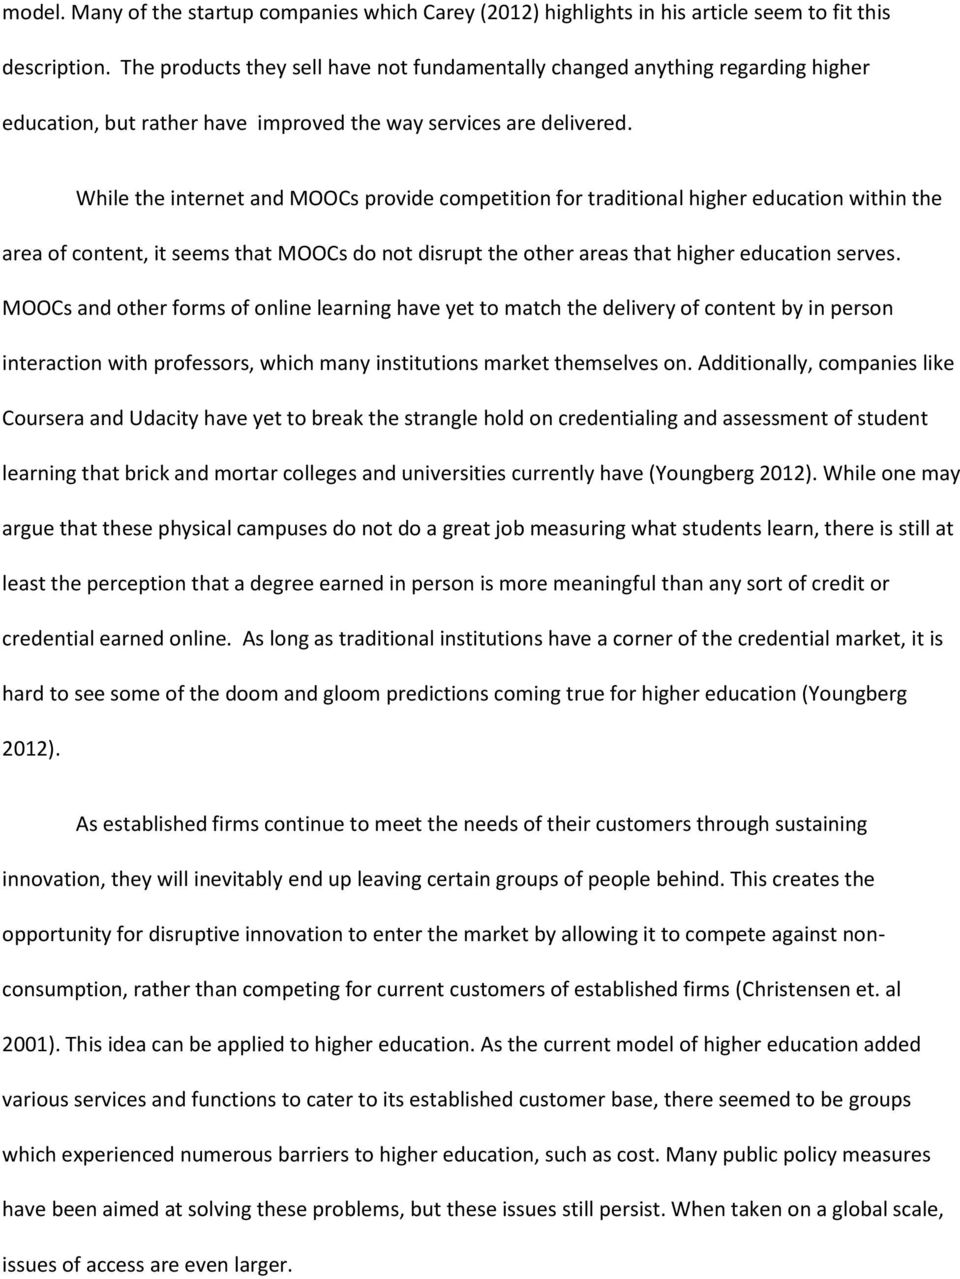 While the internet and MOOCs provide competition for traditional higher education within the area of content, it seems that MOOCs do not disrupt the other areas that higher education serves.